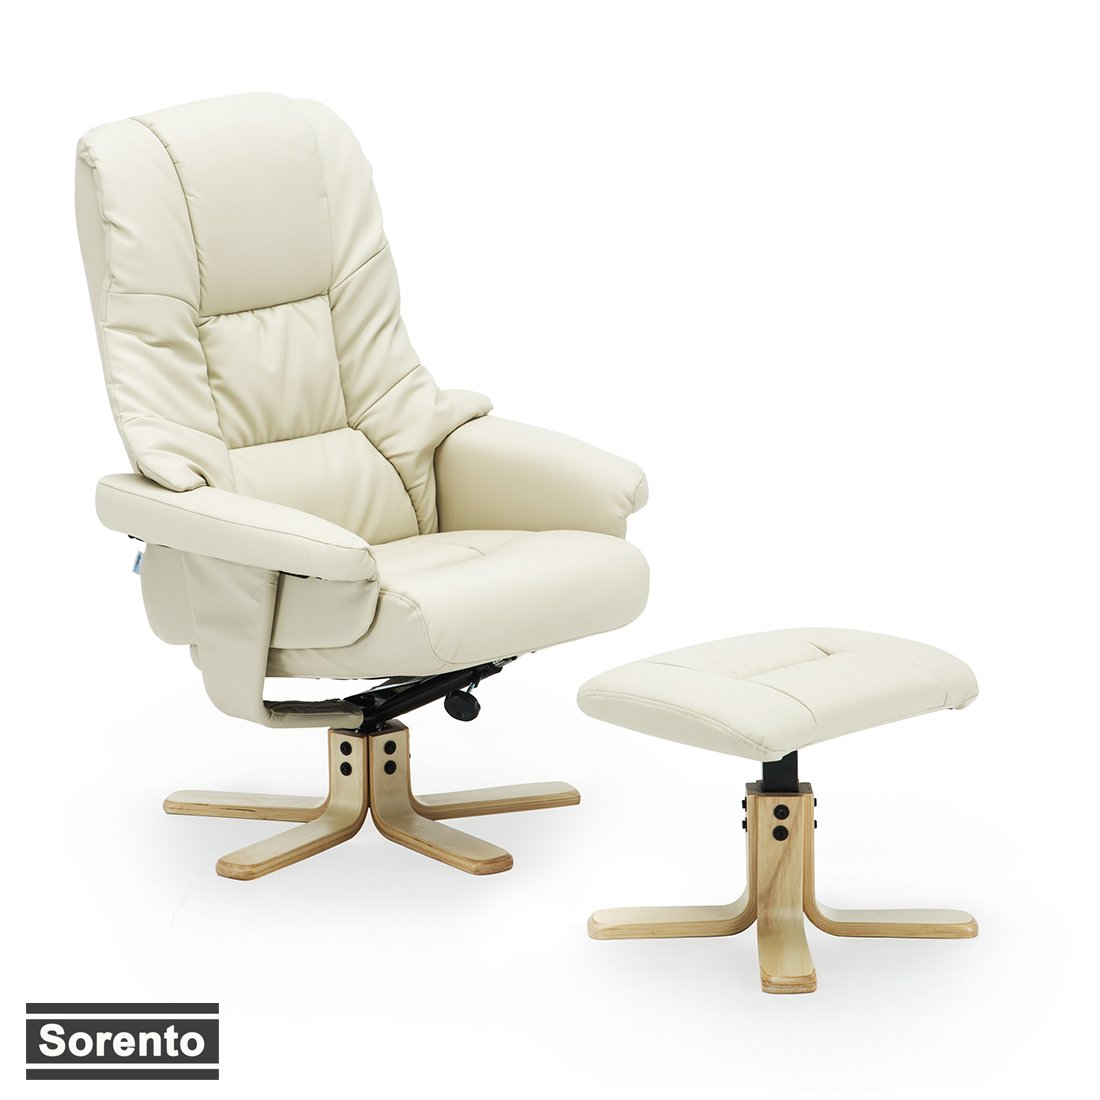 More4Homes SORENTO BONDED LEATHER SWIVEL RECLINER CHAIR ARMCHAIR FOOT STOOL (Cream)